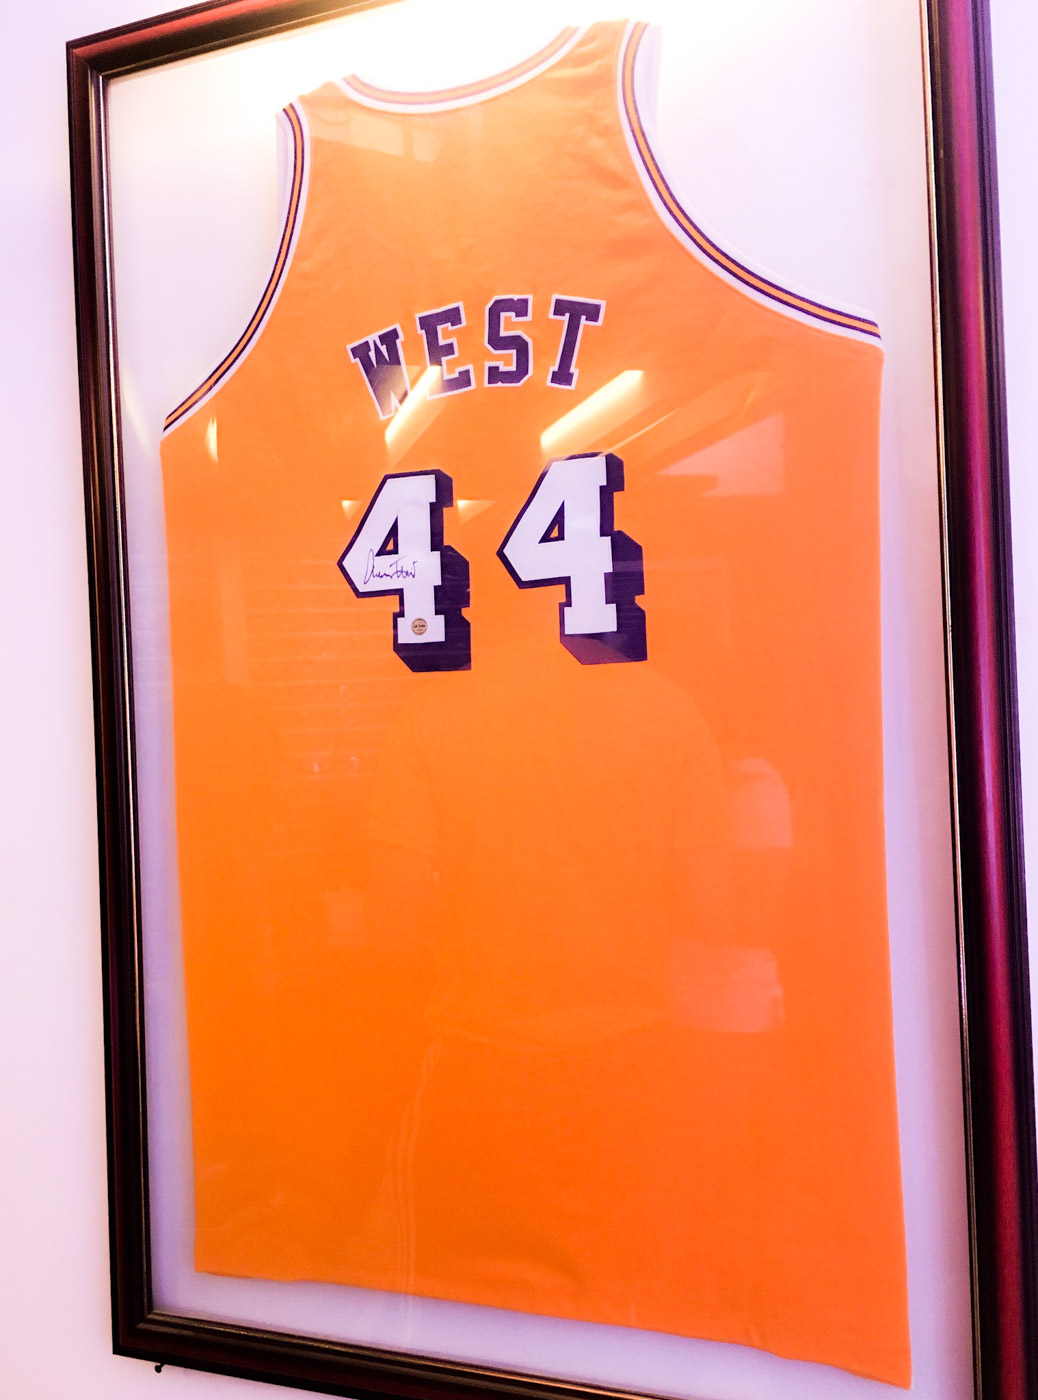 MAN ON THE LOGO. Jerry West will always be famed for being the man on the NBA logo. Photo by Beatrice Go/Rappler